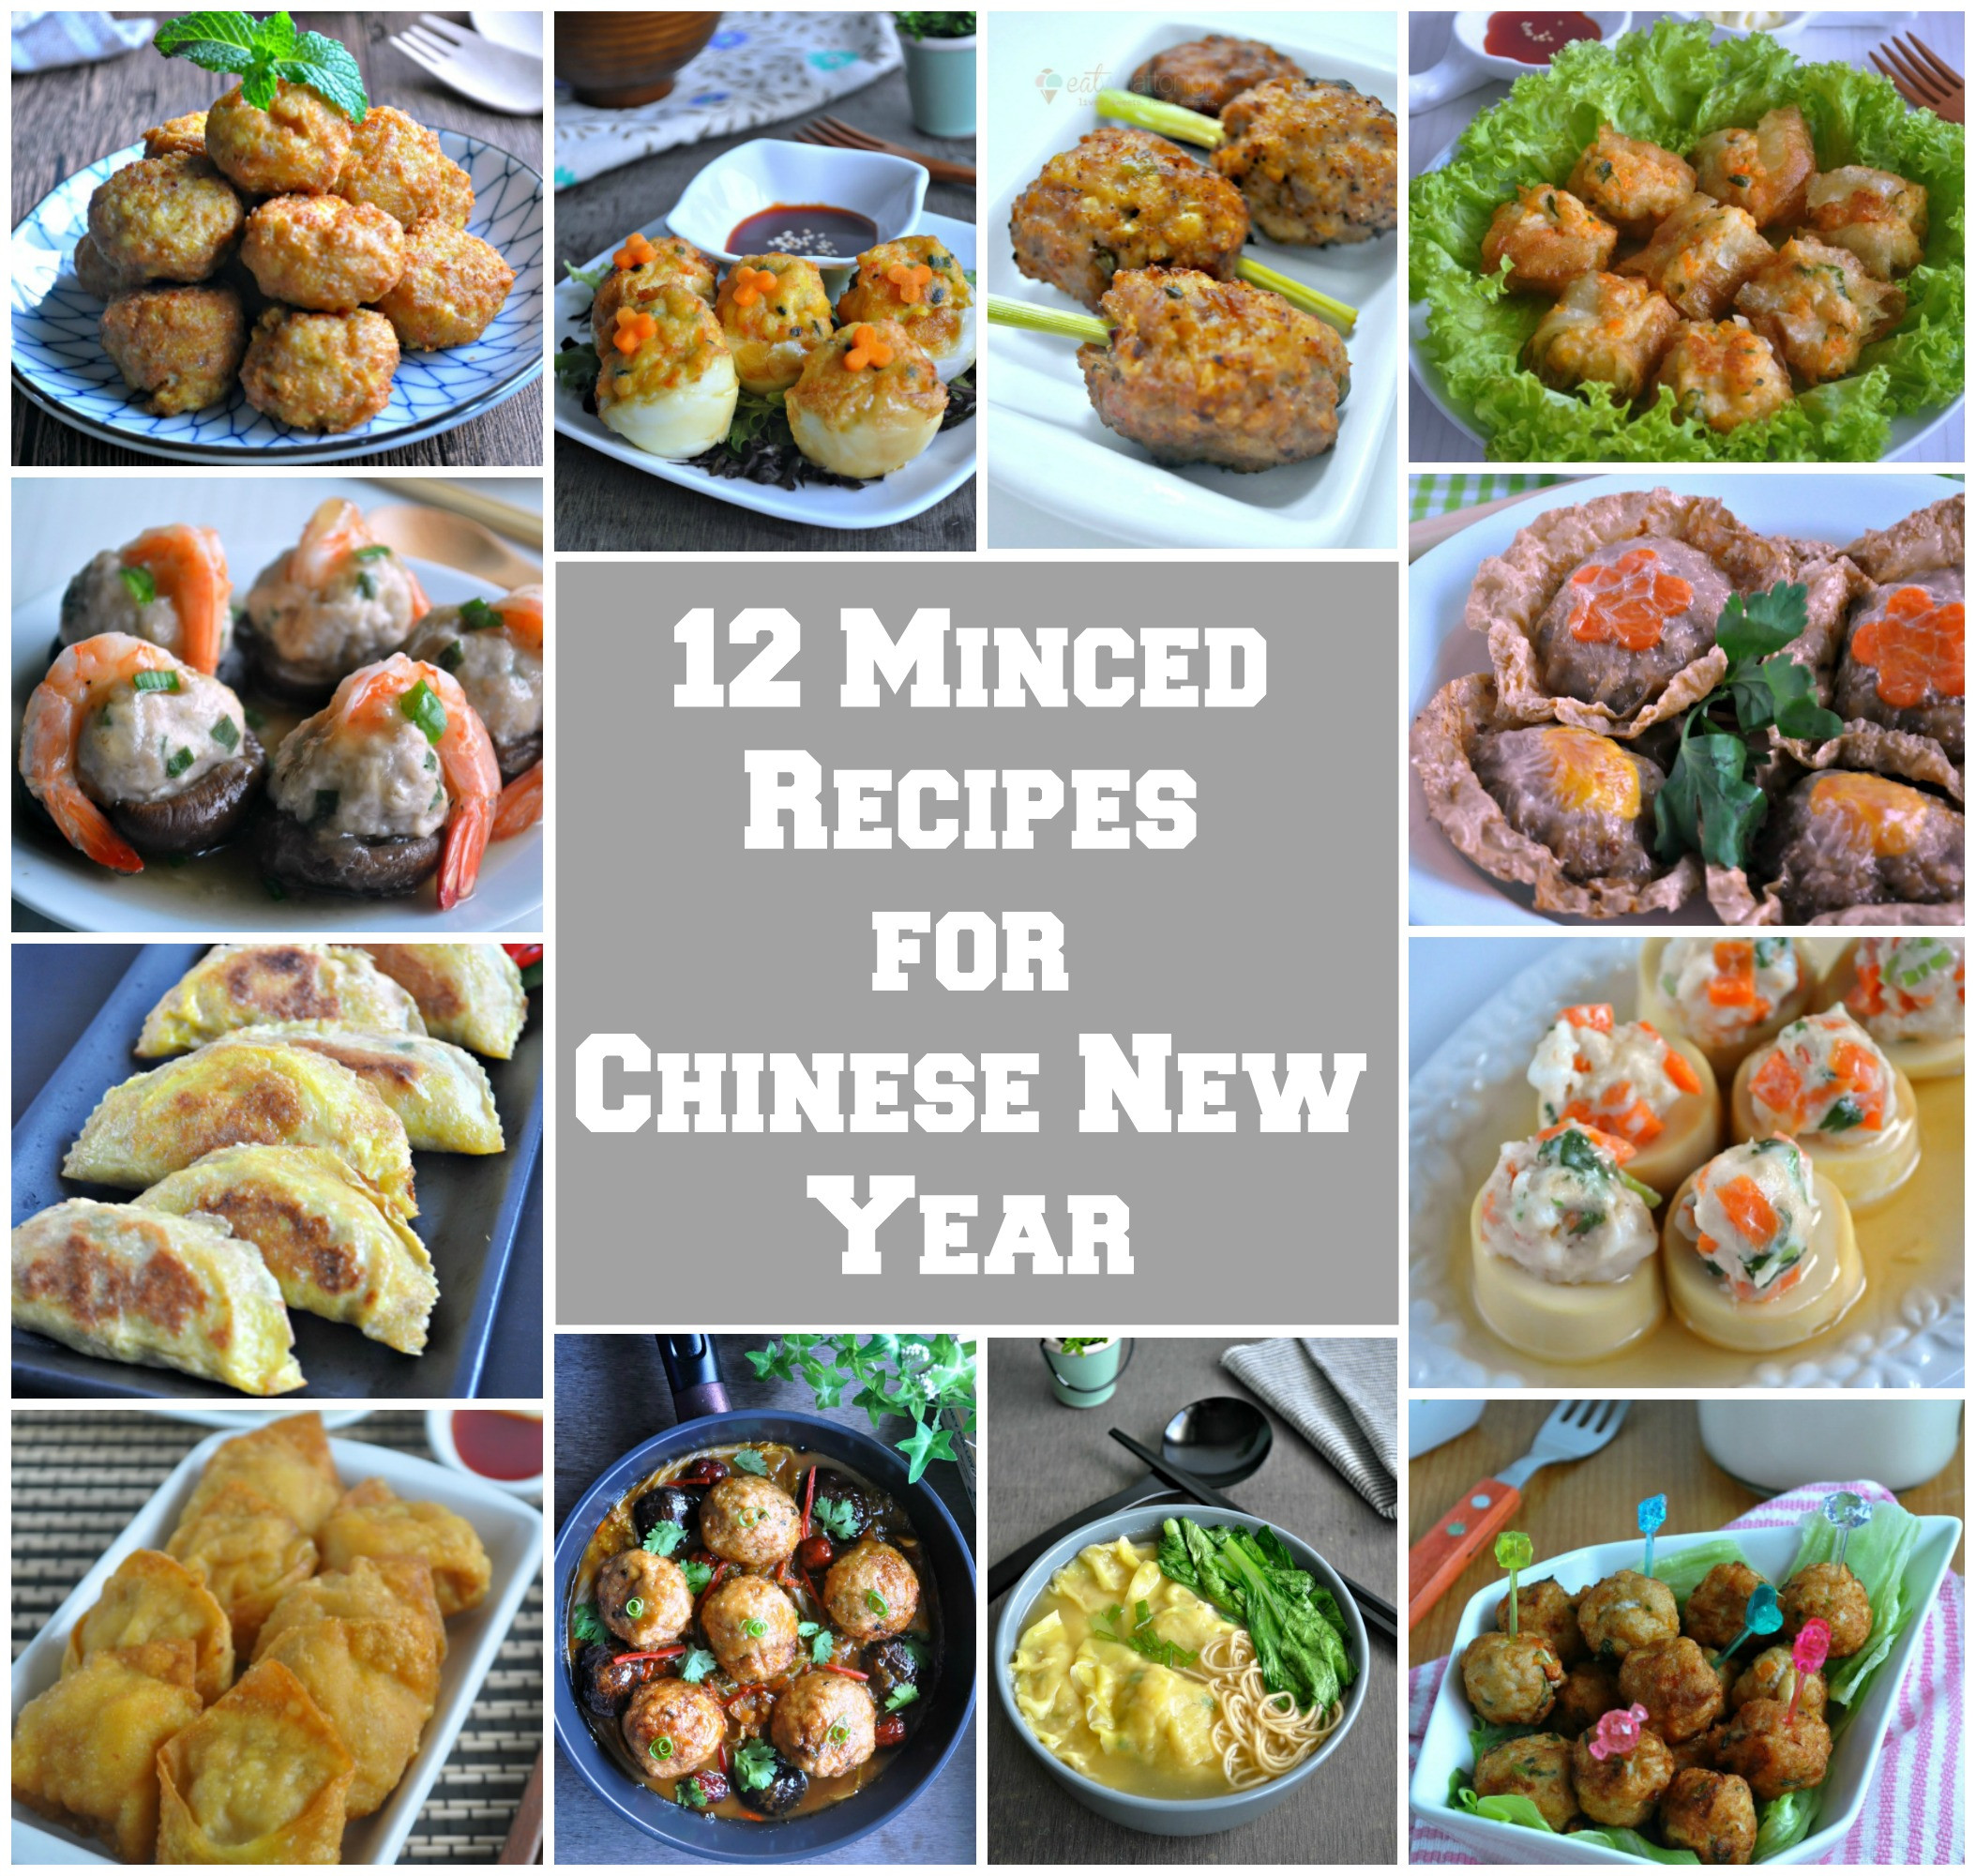 Chinese New Year Foods Recipes  12 Minced Recipes for Chinese New Year Eat What Tonight